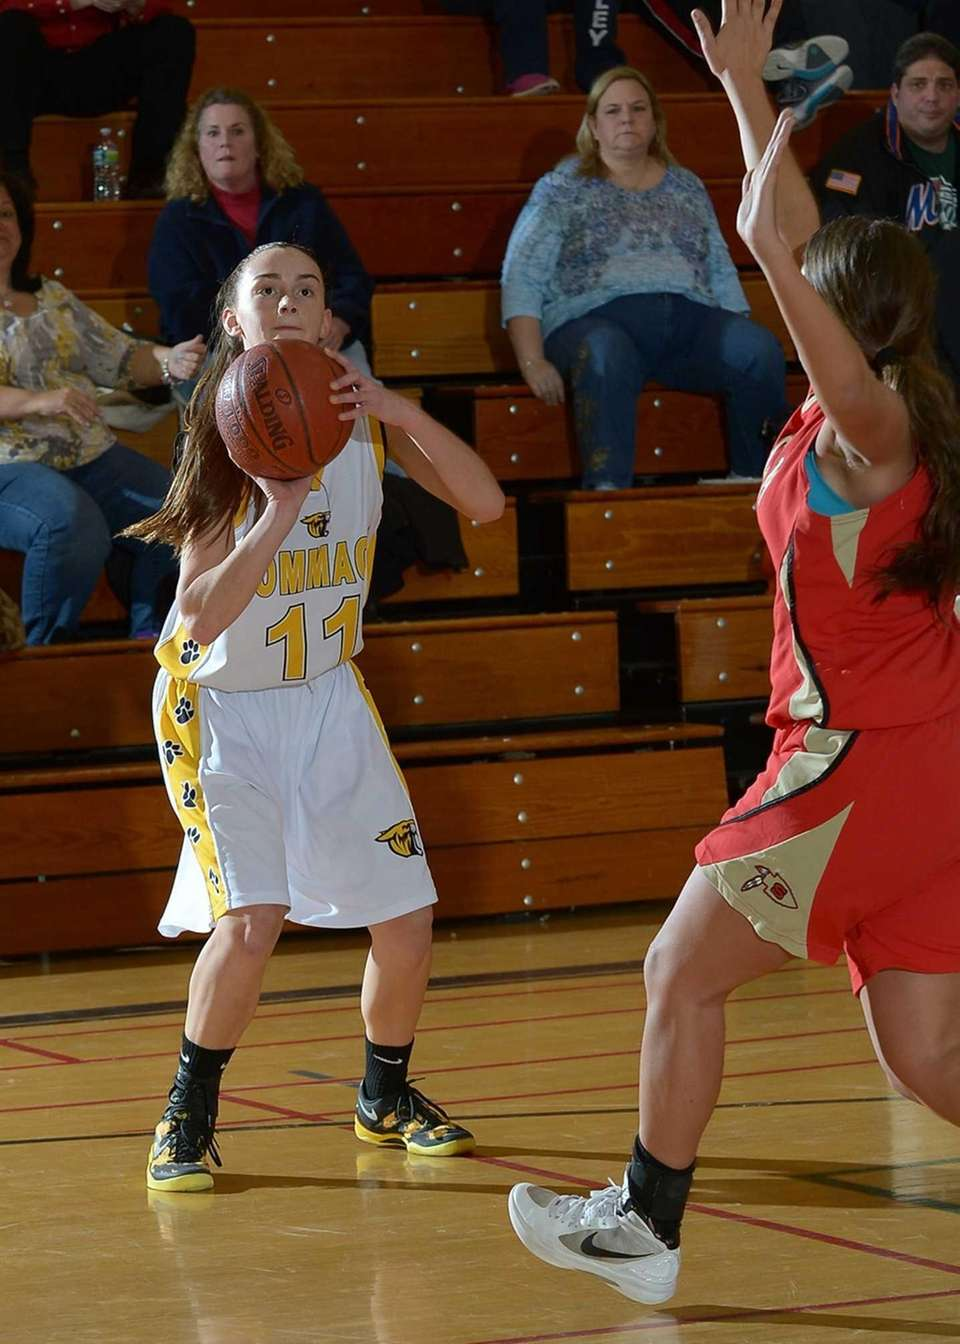 Commack's Erin Storck lines up the shot during